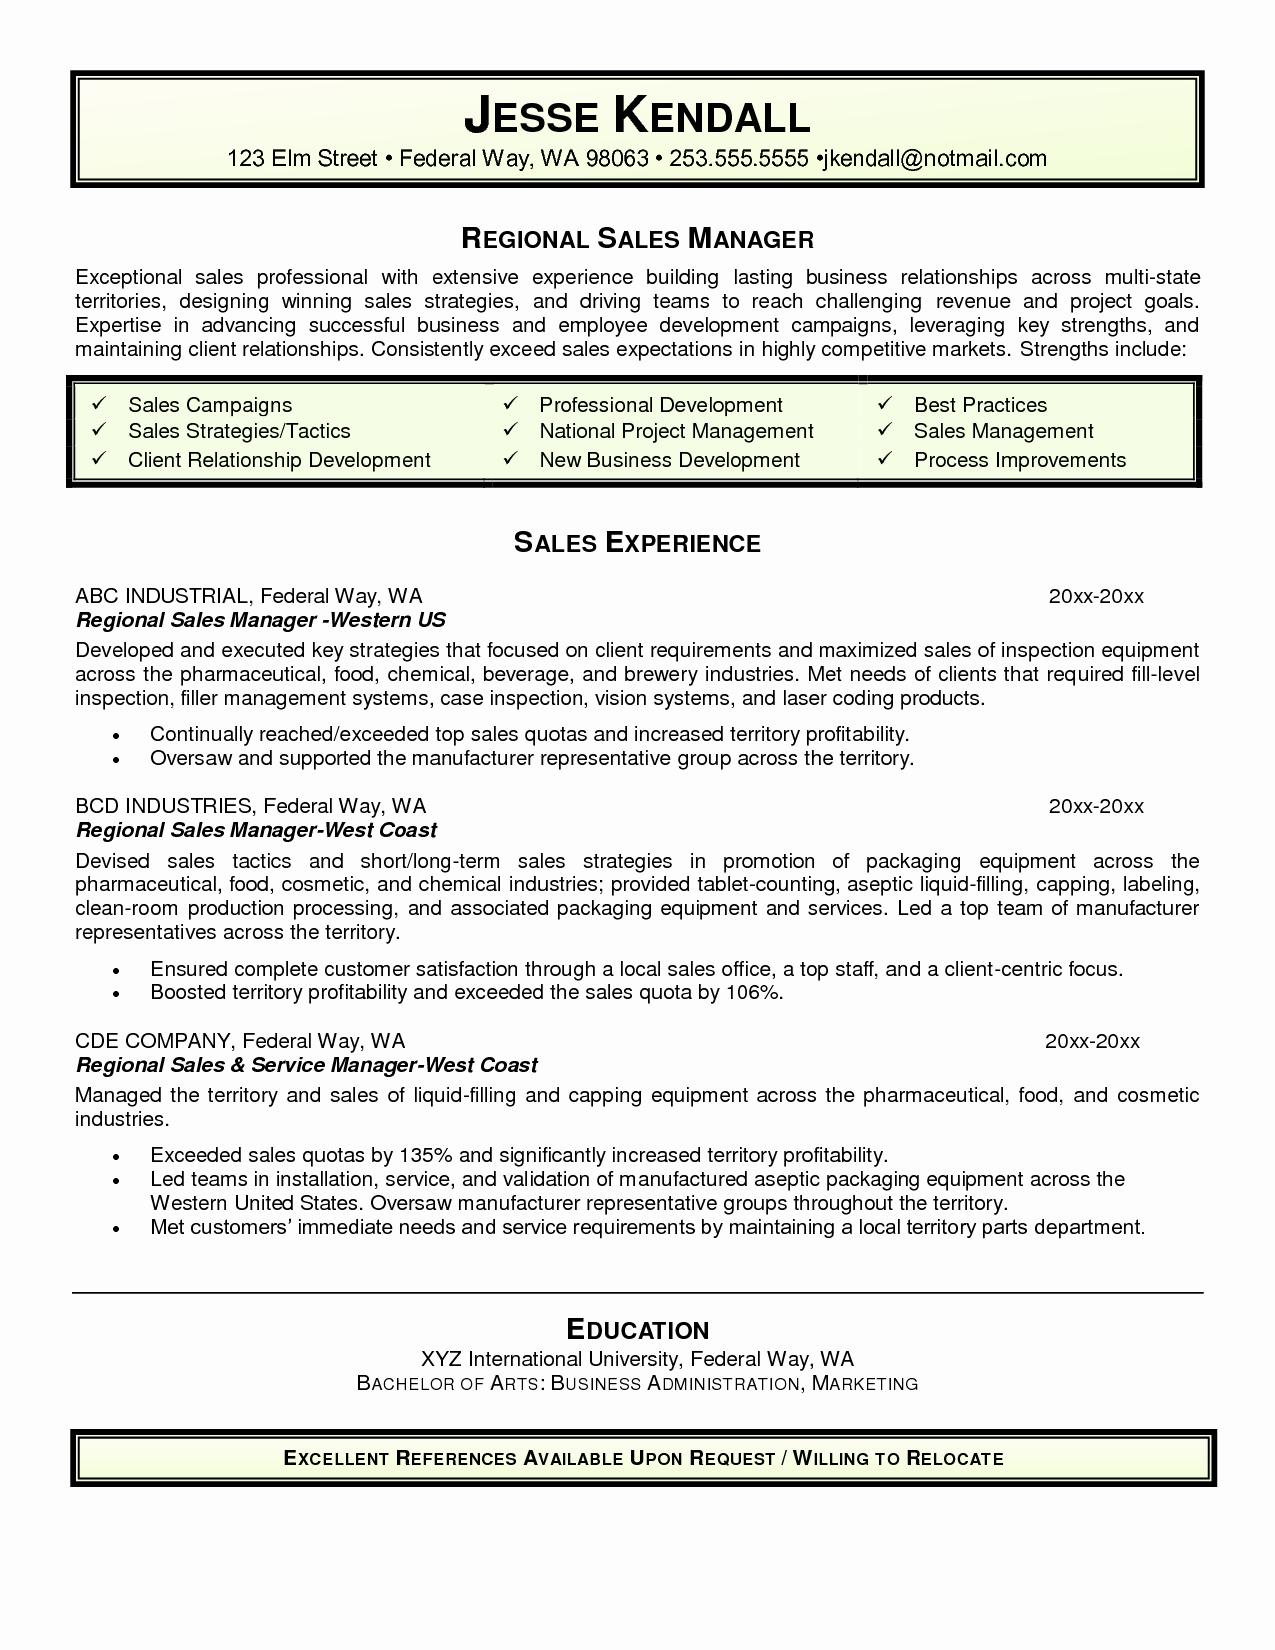 Sales Manager Resume Objective Examples Resume Ideas